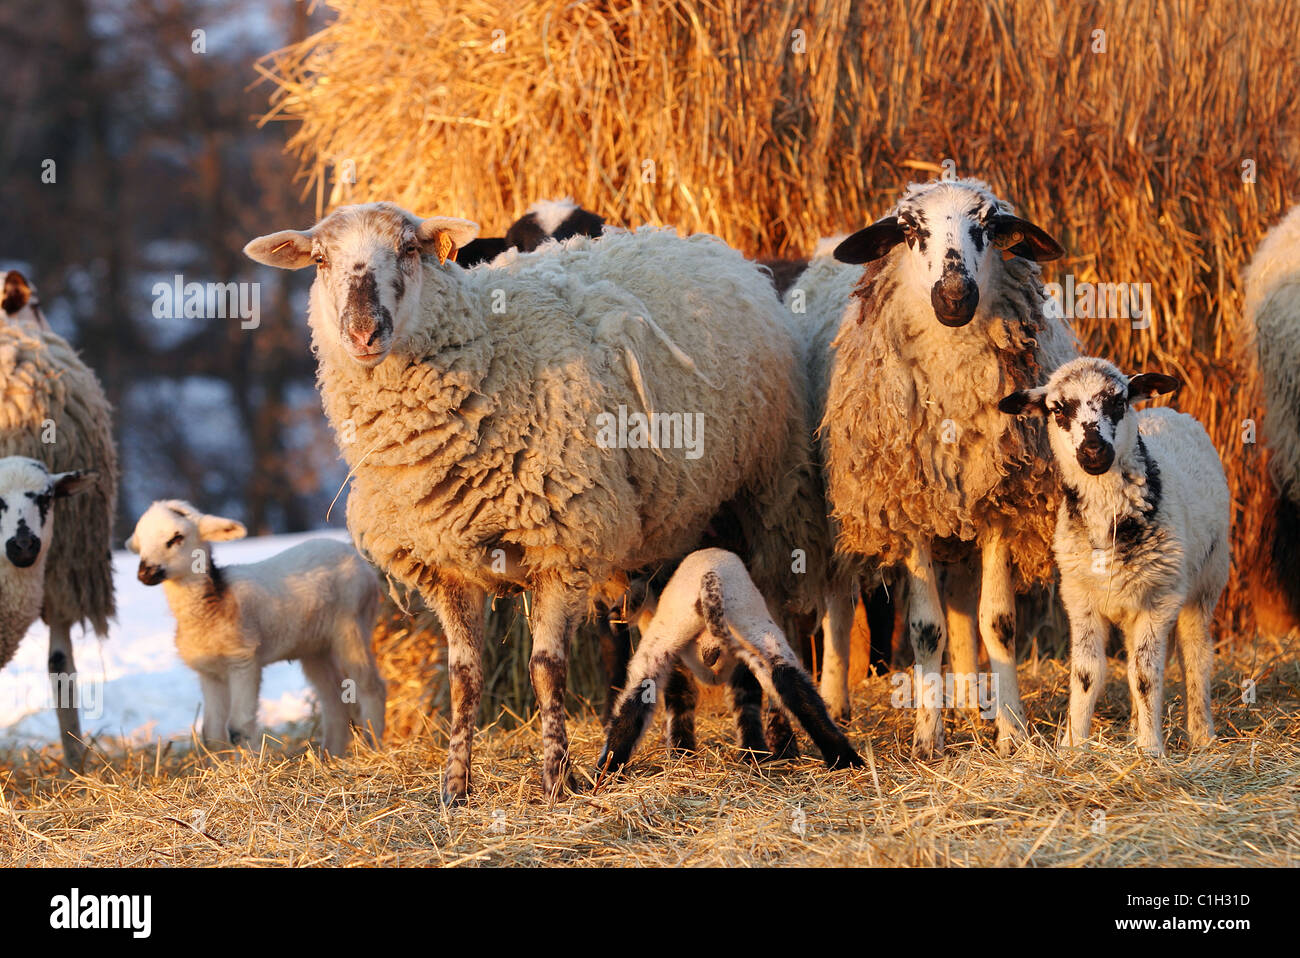 France, ewes and lambs - Stock Image